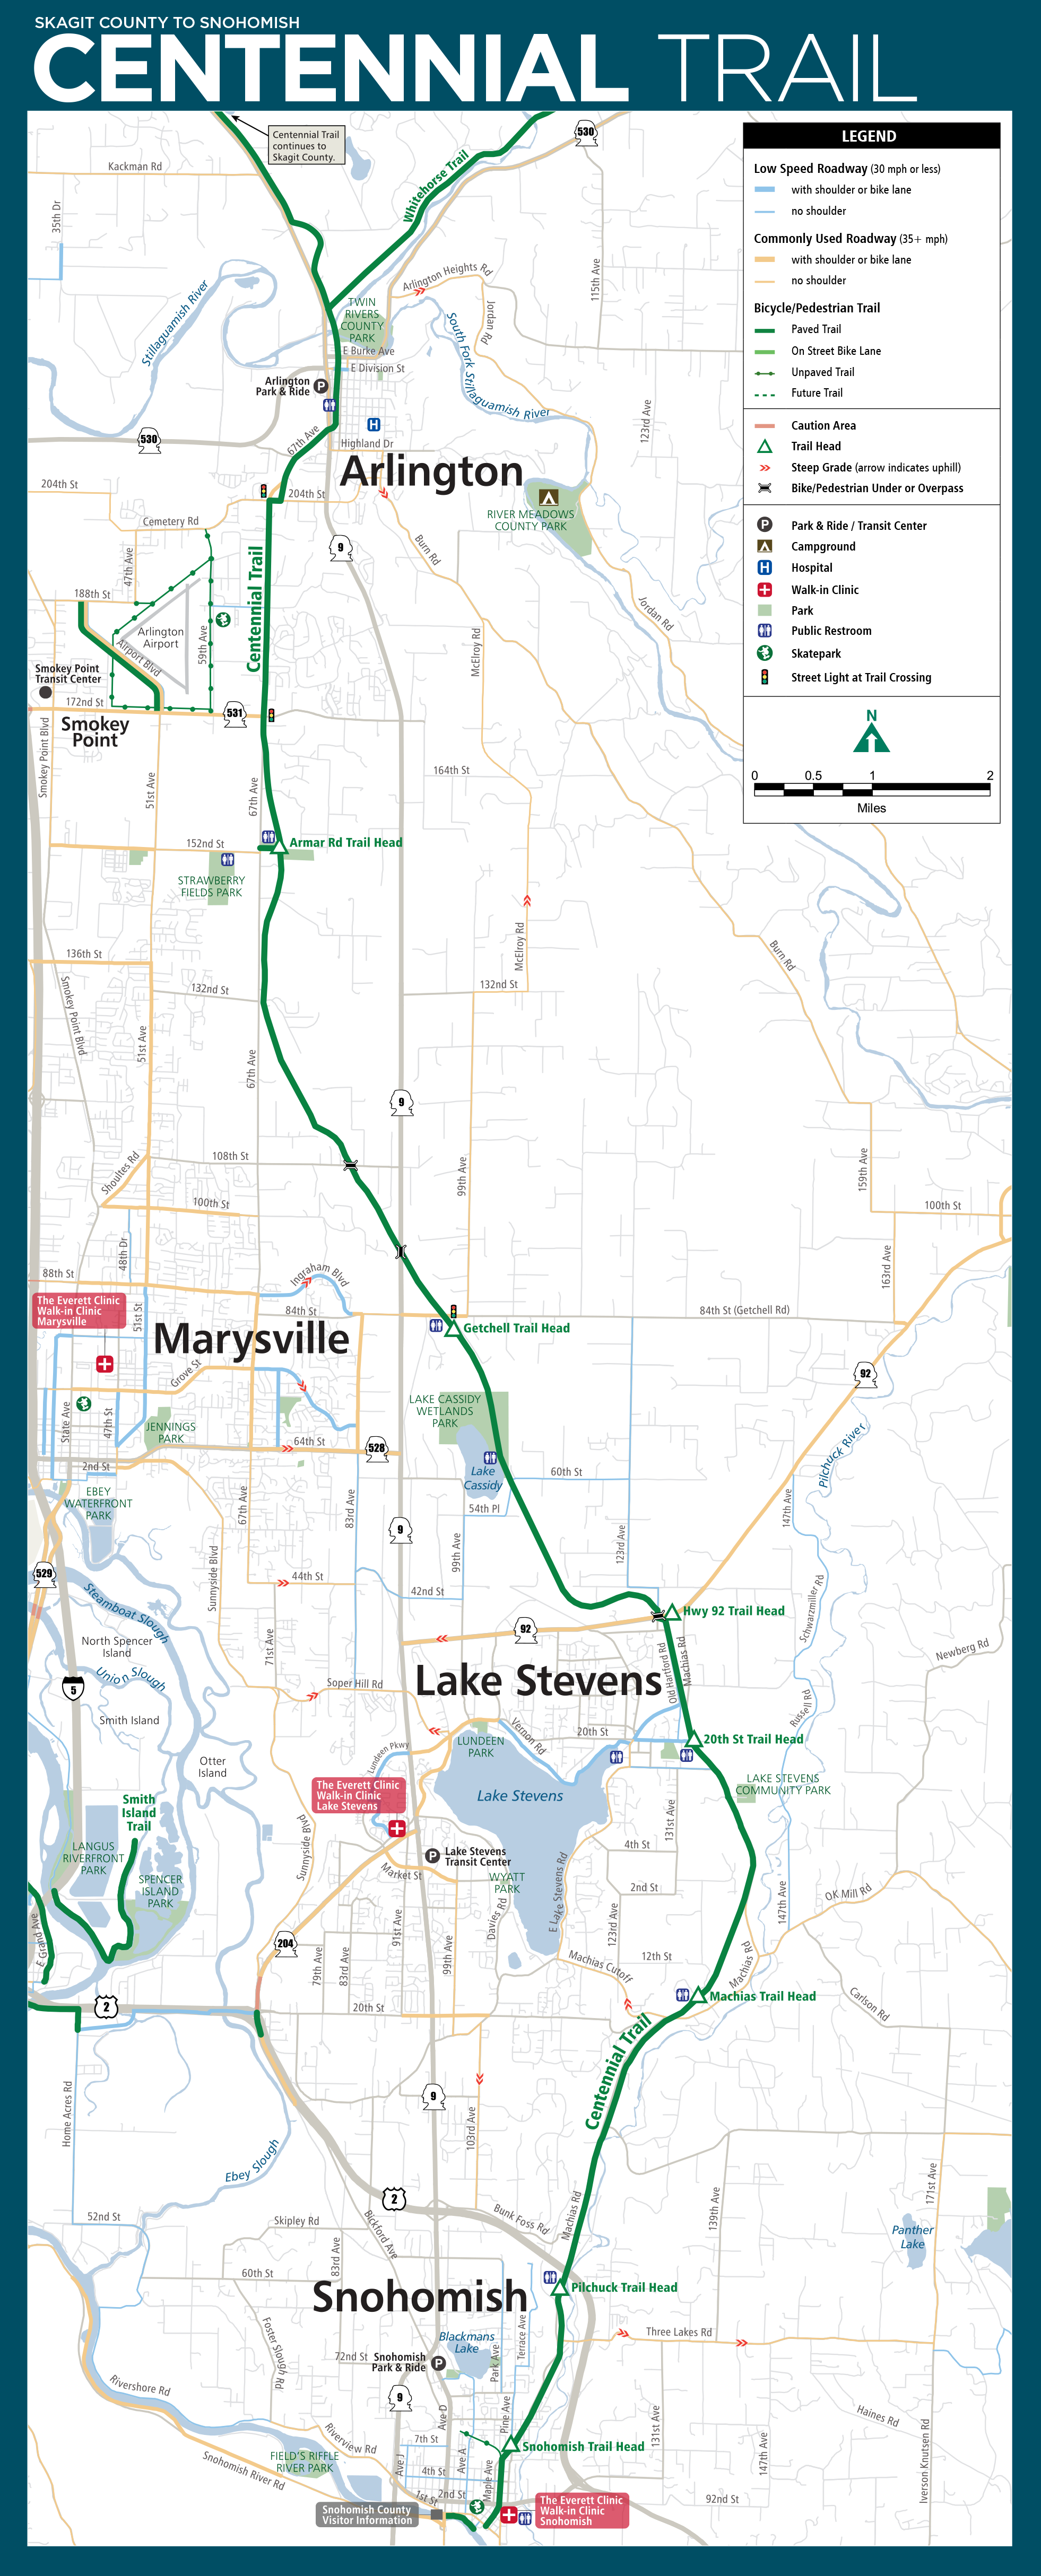 Bike Tips, Maps - Bus Service | Community Transit on jefferson county map, king county map, snohomish wa, city of marysville map, whatcom county map, everett map, kitsap county map, dayton county map, riley county ks map, pierce county map, washington map, mount vernon map, deer park county map, skagit county map, clark county map, bothell map, chelan county map, thurston county map, saint paul county map, seattle map,